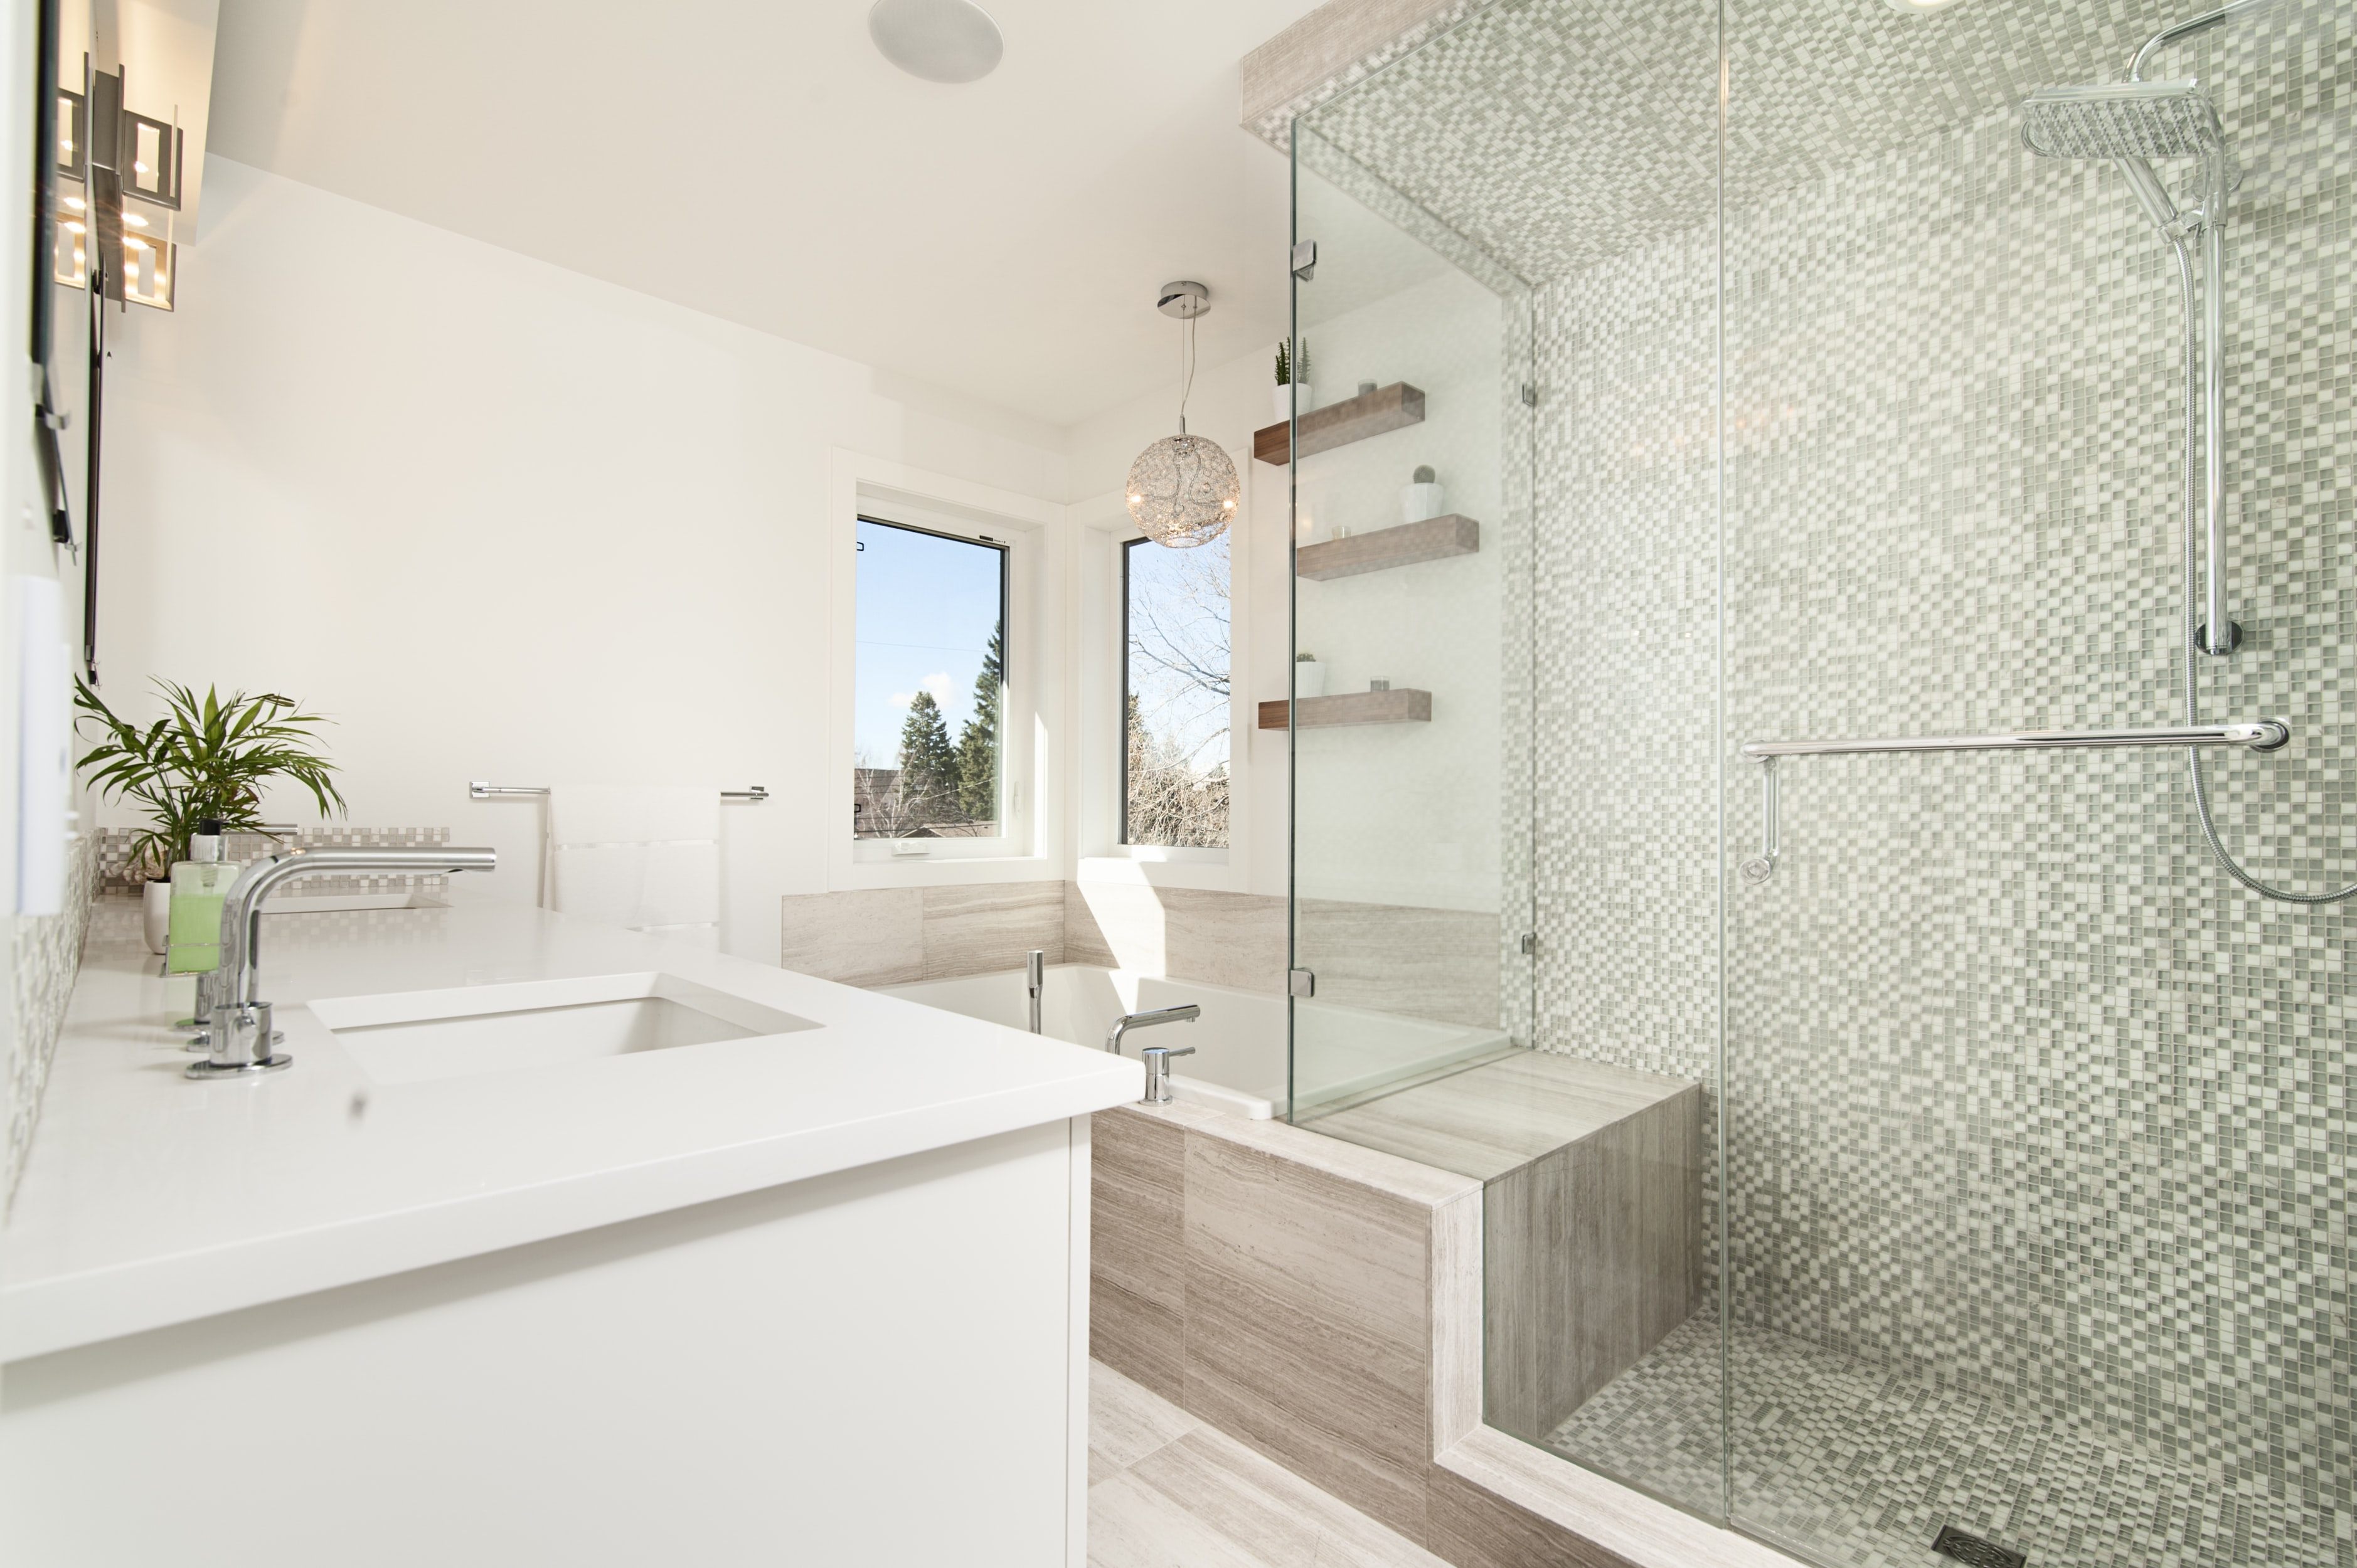 Case Study: My Experience With Remodeling